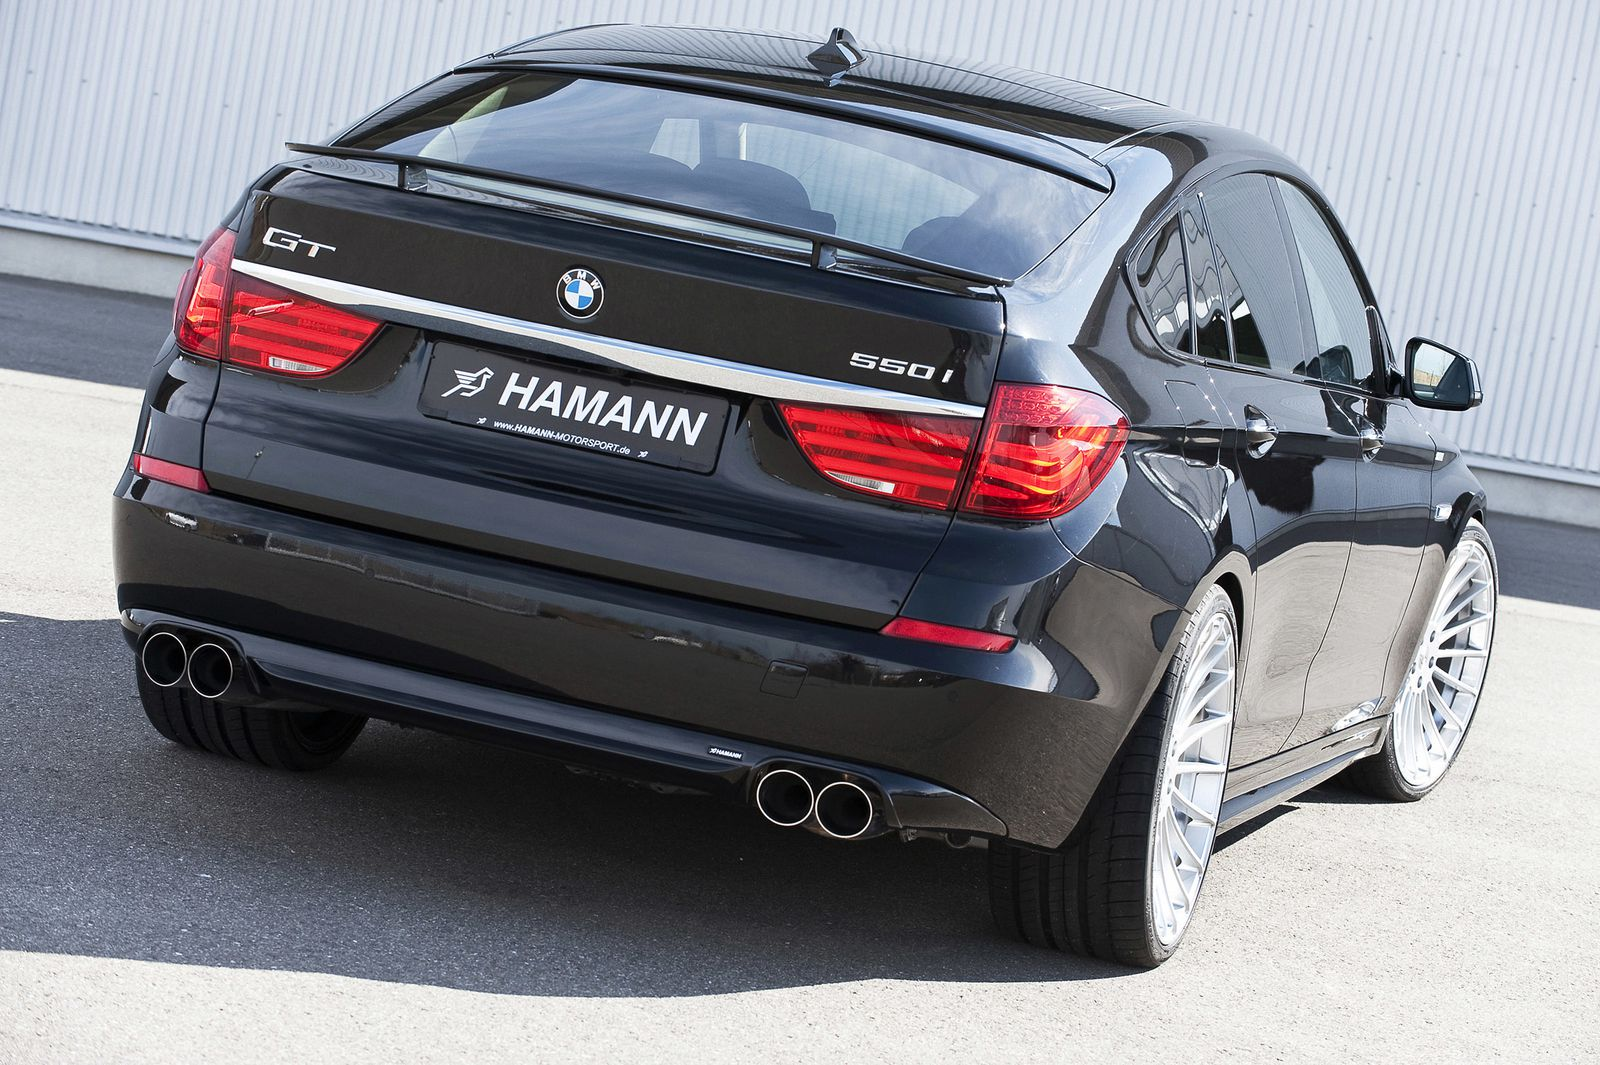 2010 hamann bmw 5 series gt dark cars wallpapers. Black Bedroom Furniture Sets. Home Design Ideas